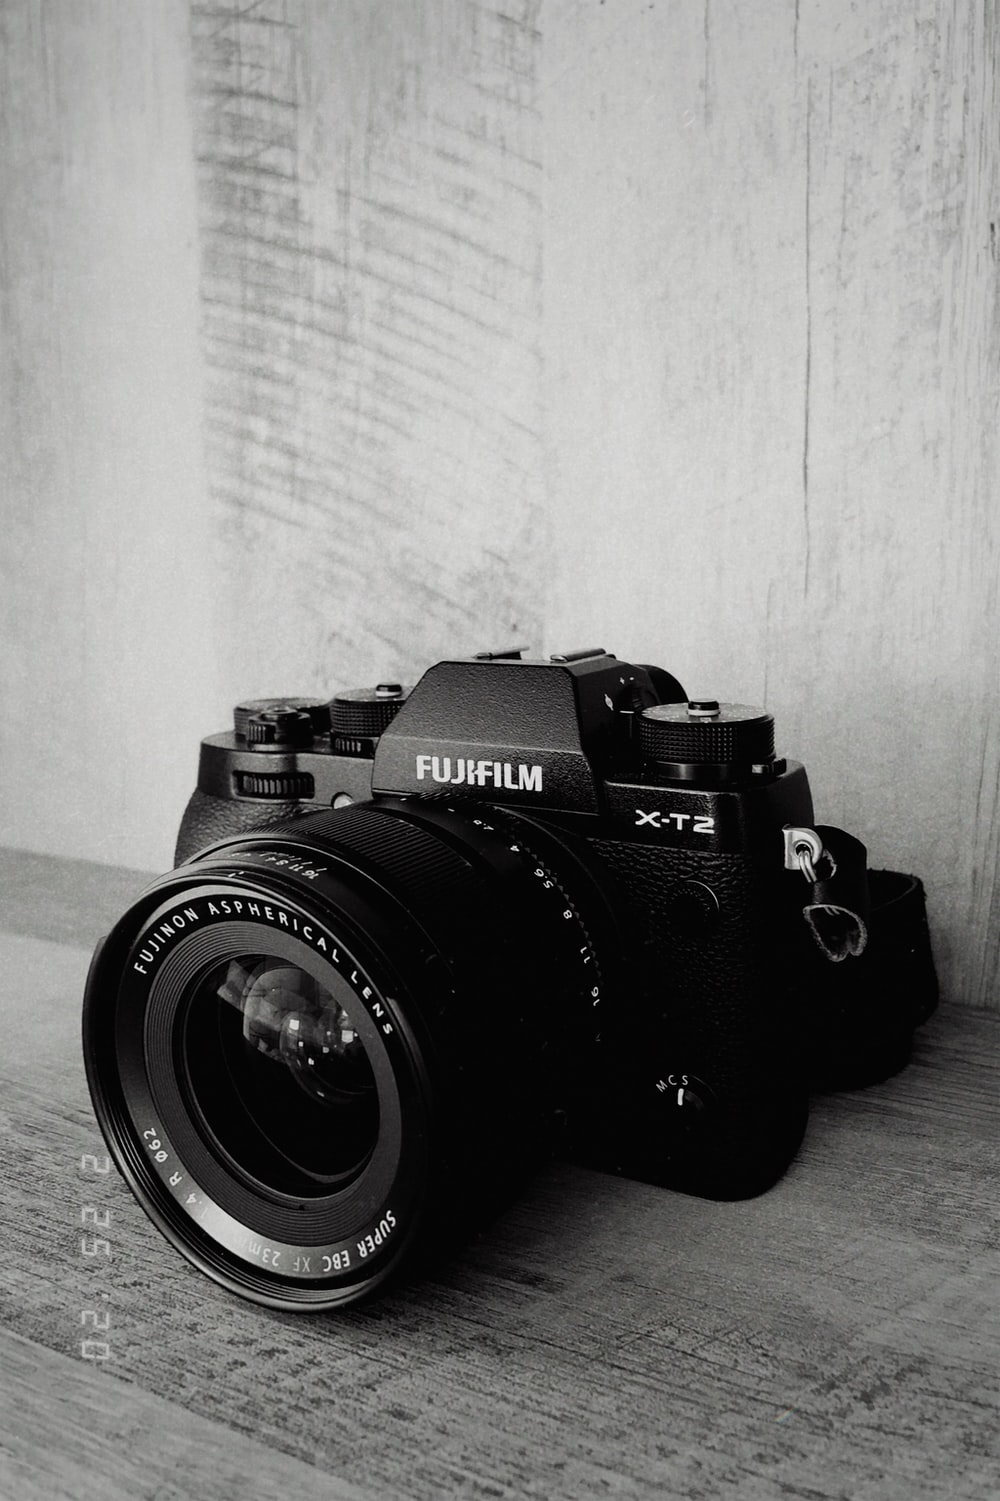 black nikon dslr camera on white textile